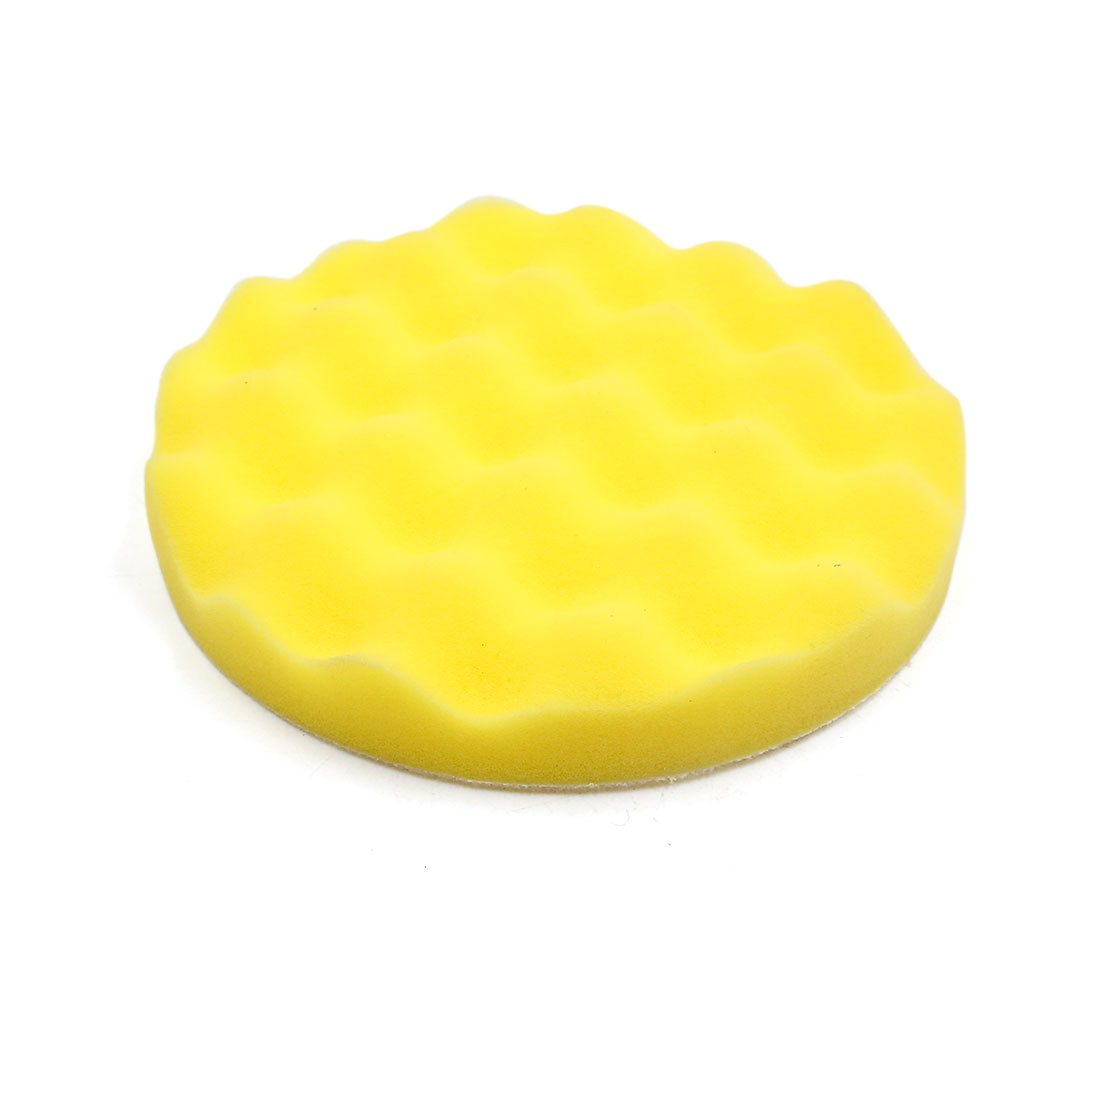 "7"" Yellow Car Waxing Polish Foam Washing Sponge Wax Cleaning Plate 2pcs - image 3 de 4"